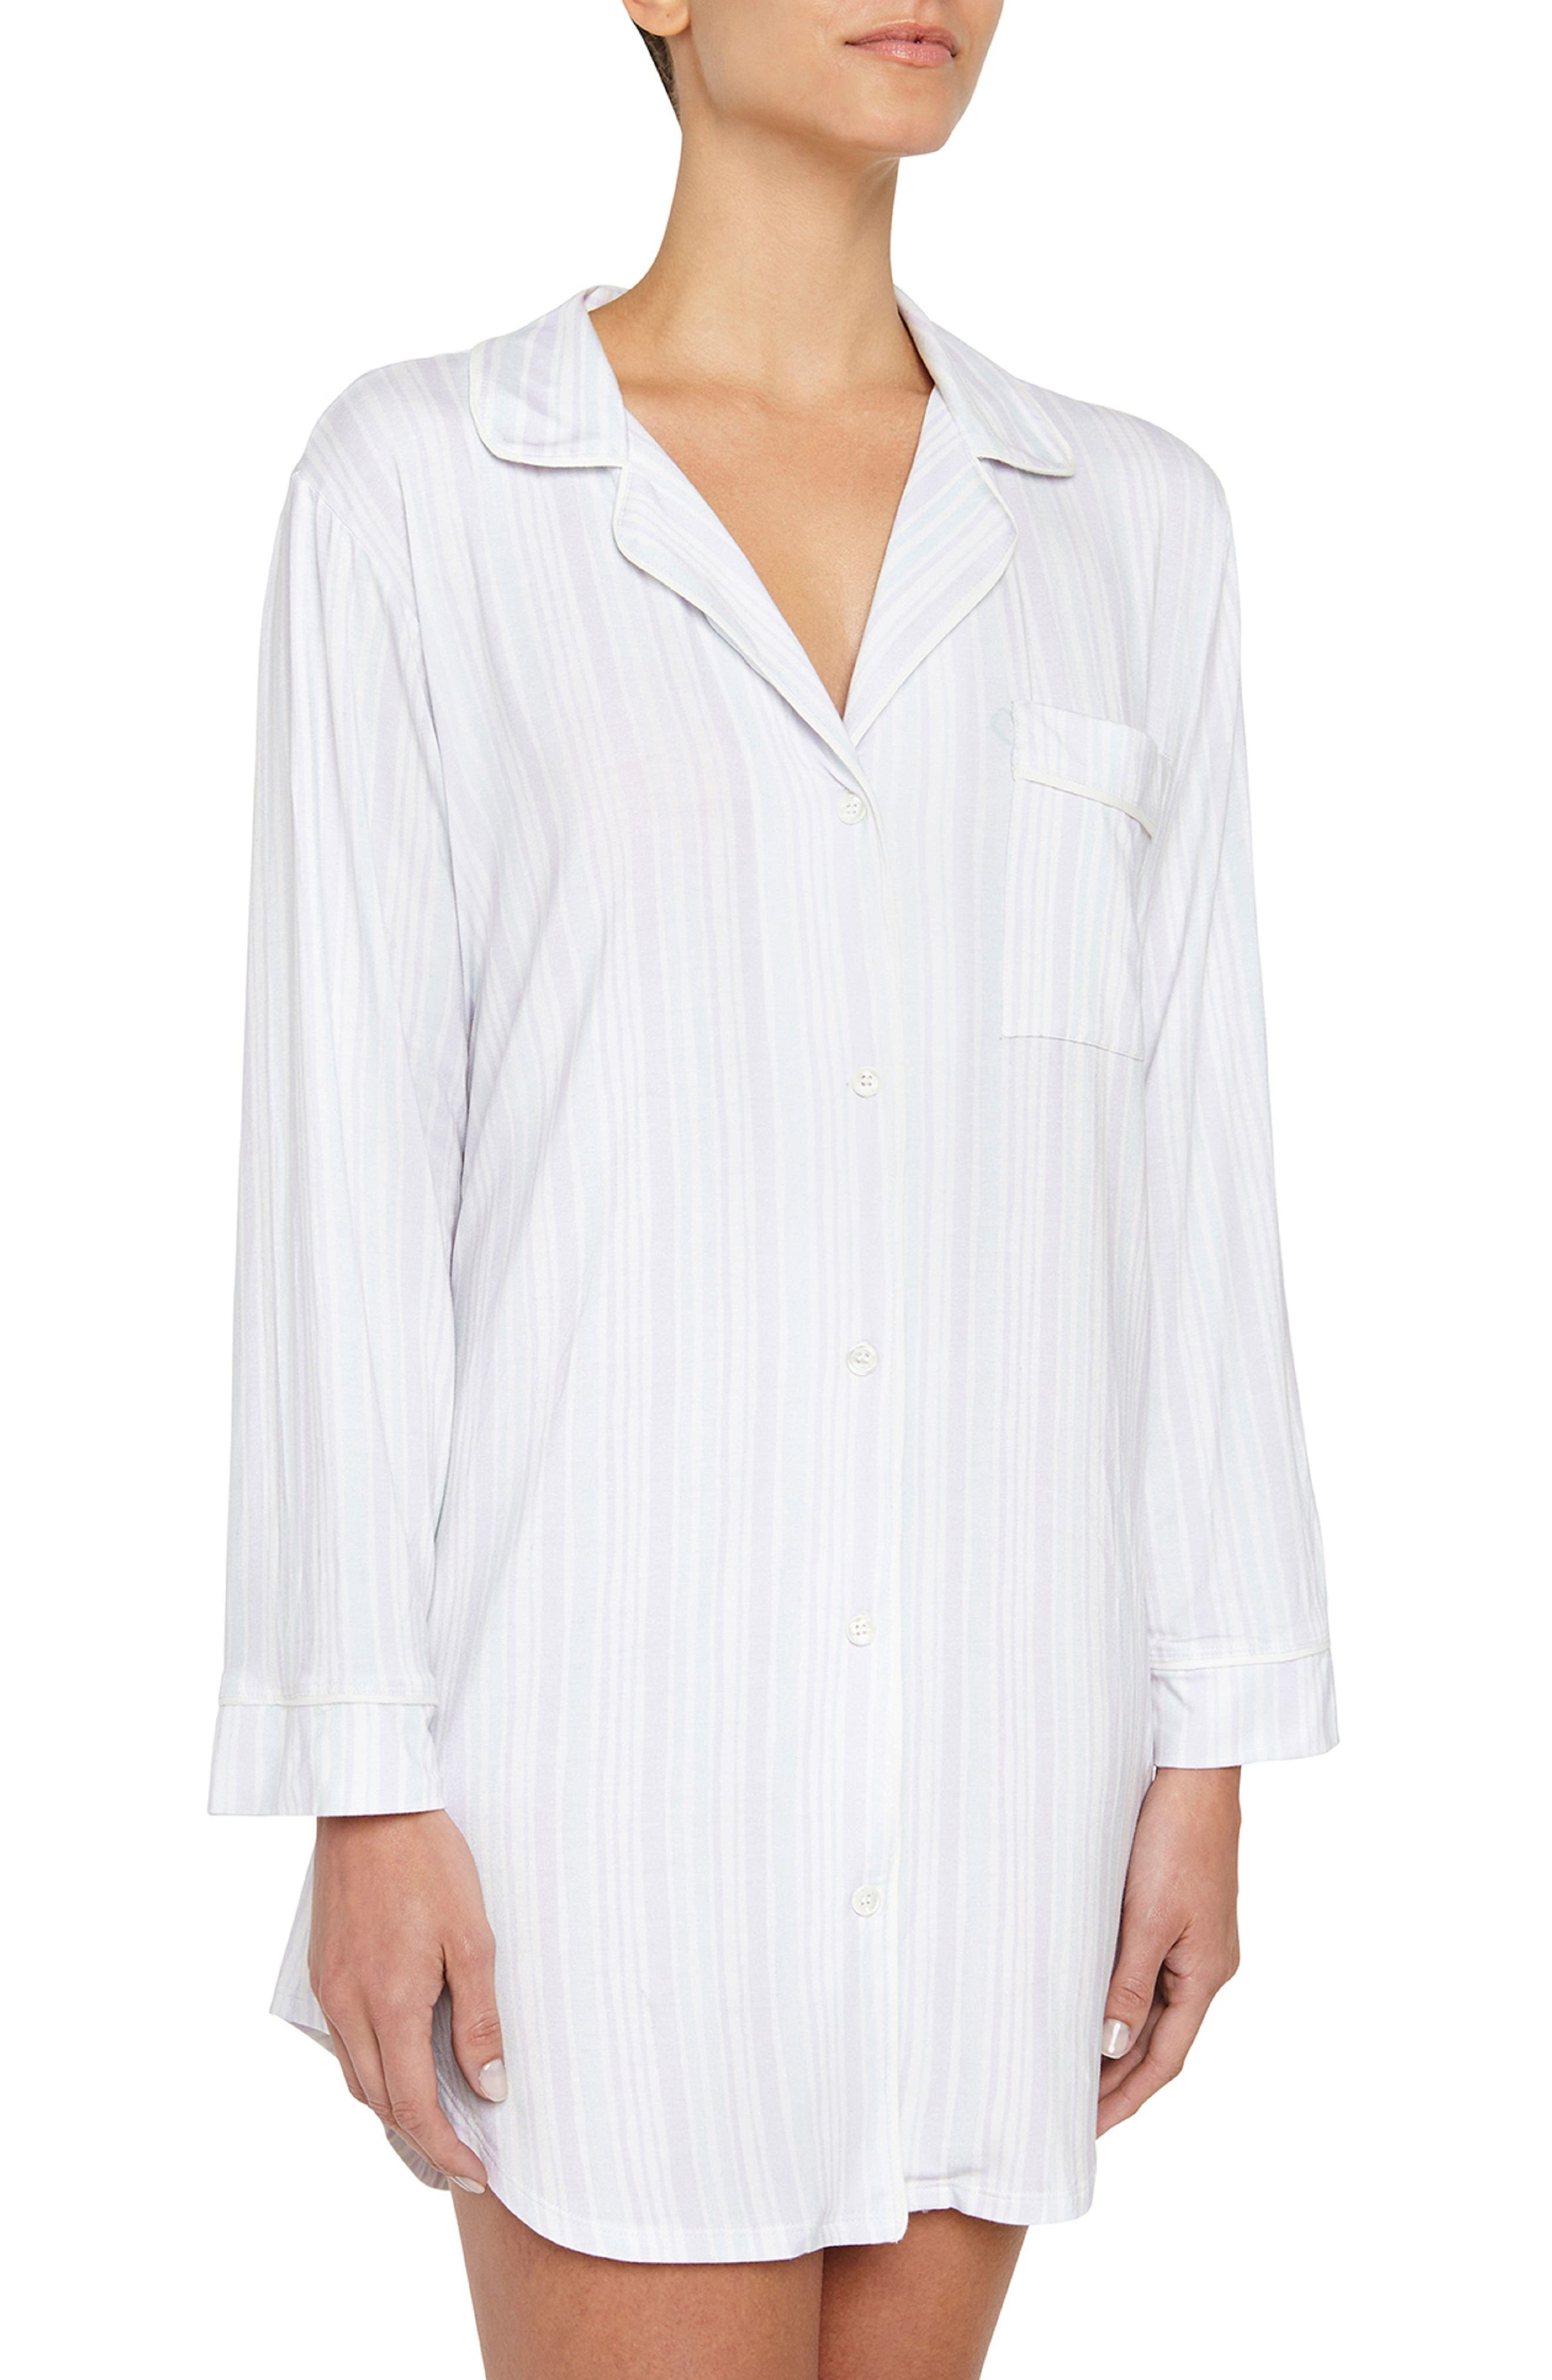 Painted Stripes Sleep Shirt,                         Main,                         color, Multi